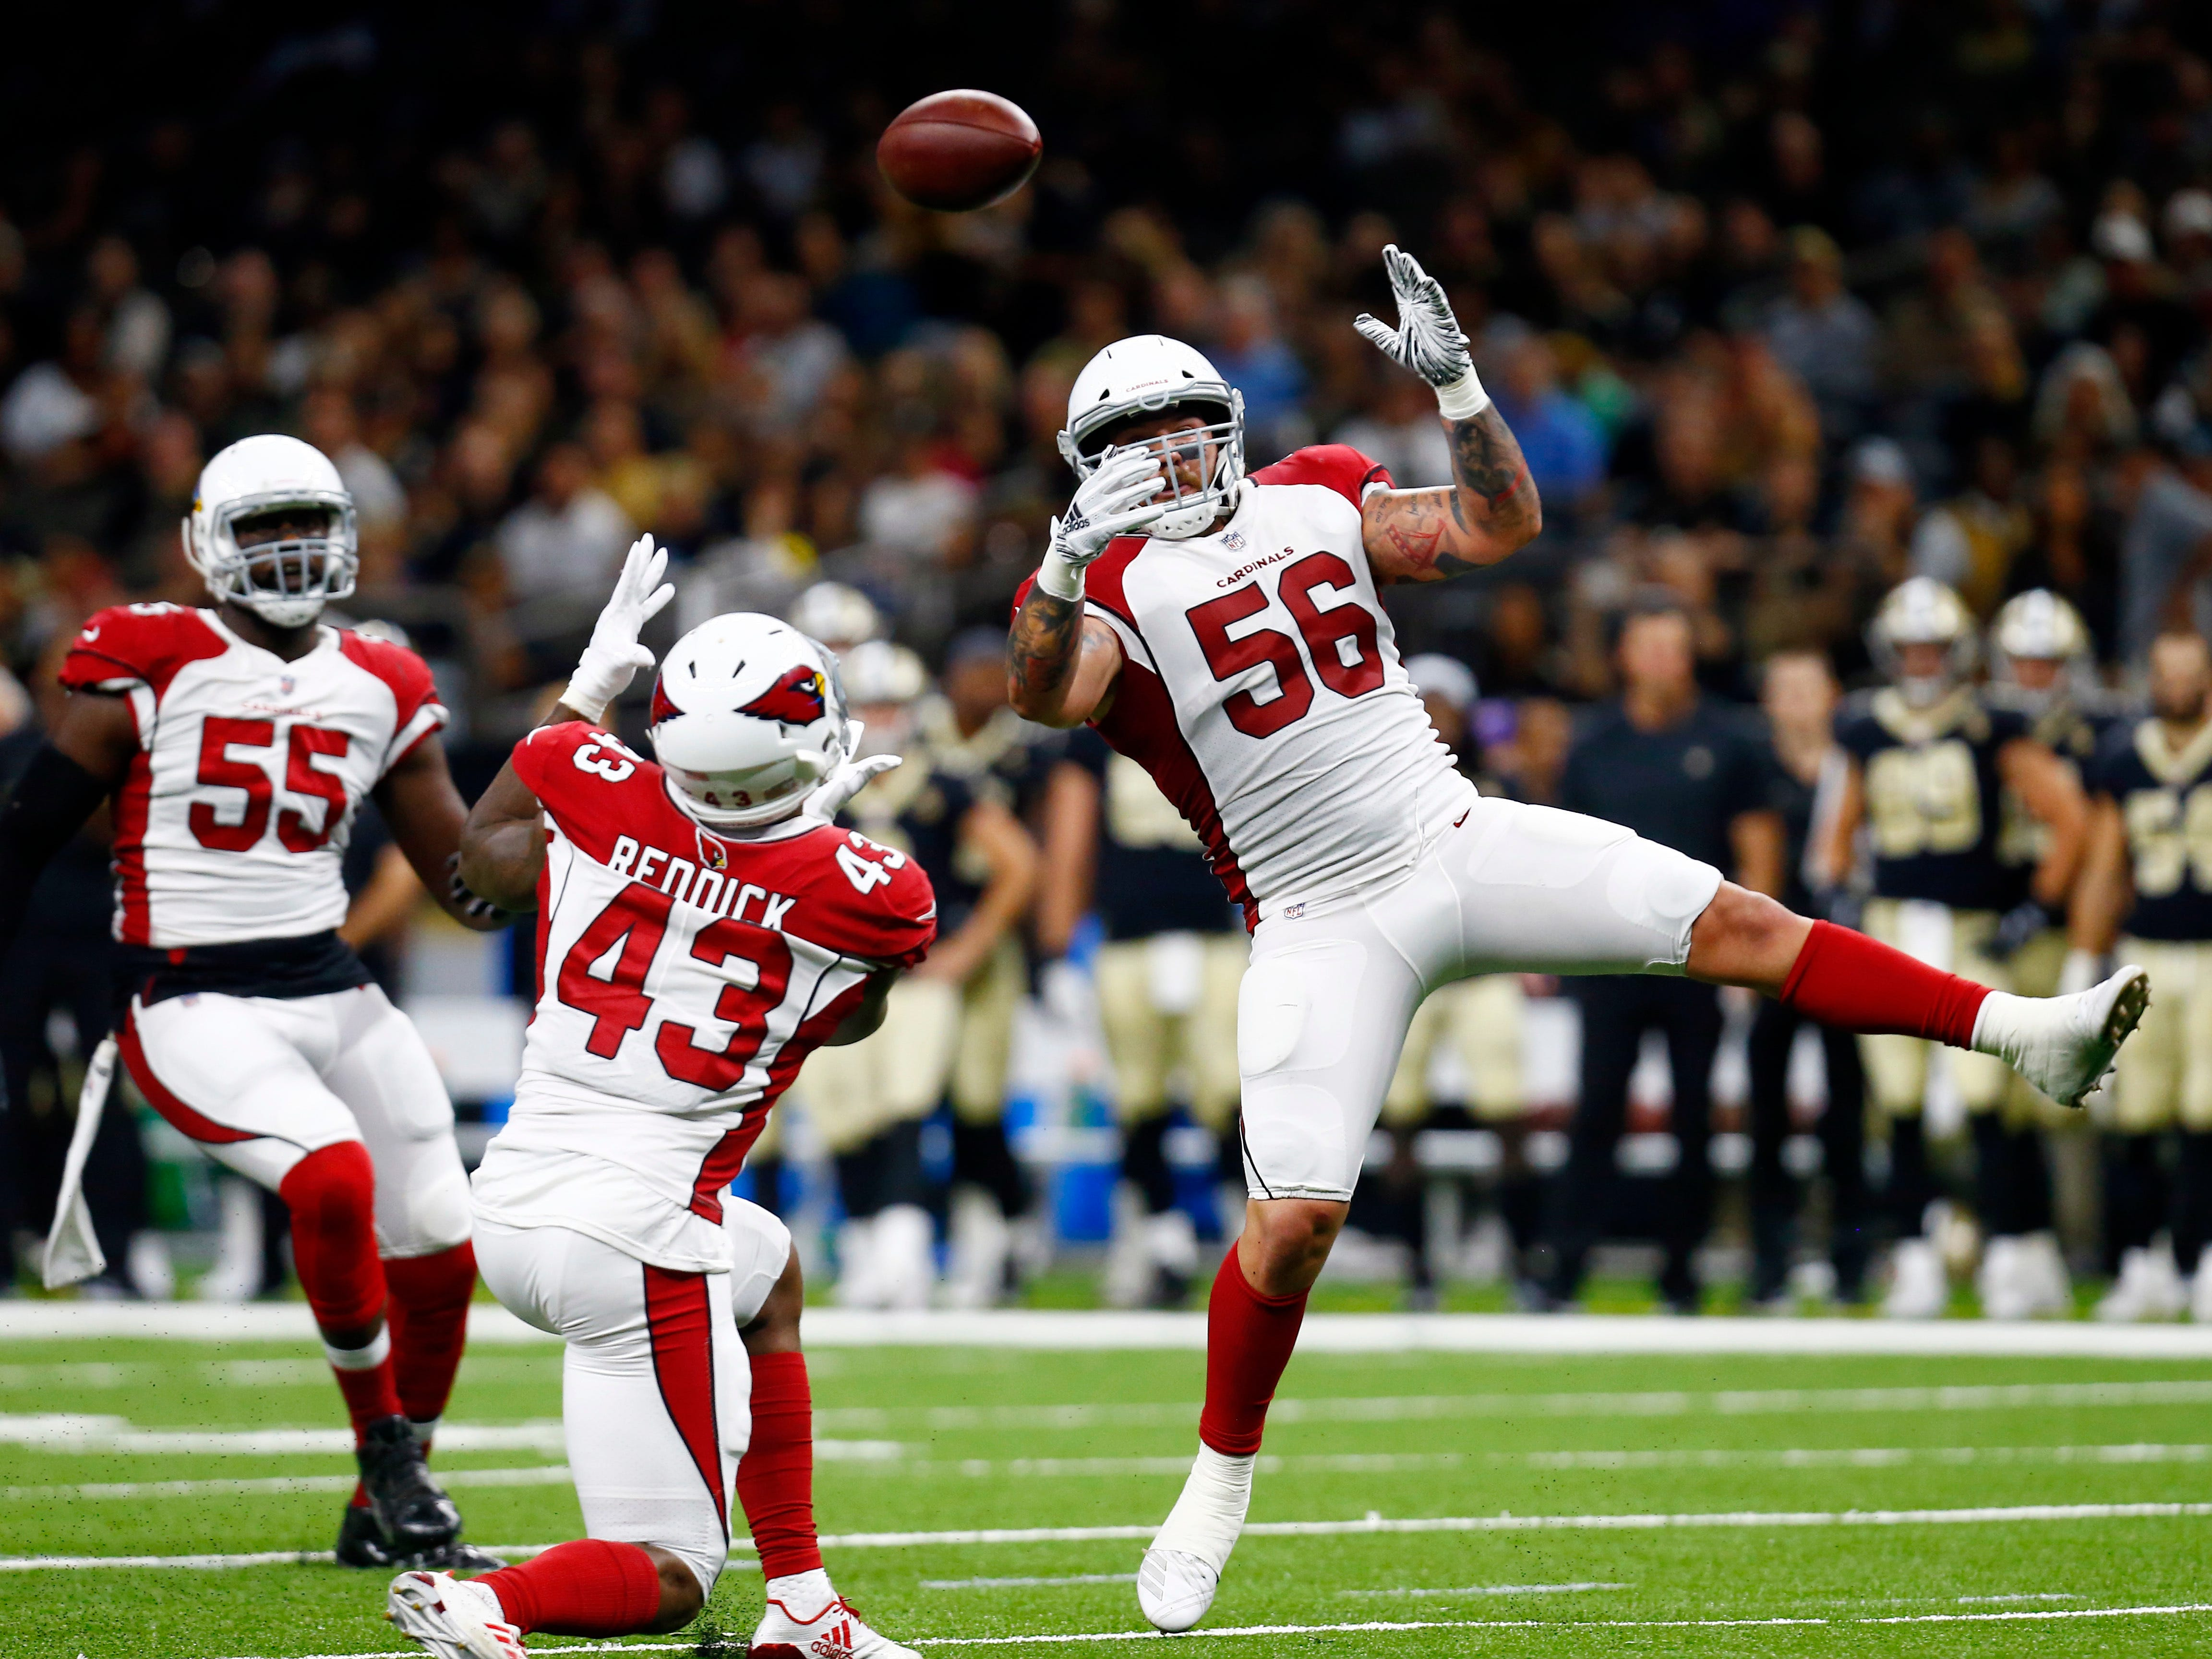 Arizona Cardinals linebacker Haason Reddick (43) intercepts a pass on a deflection by linebacker Demario Davis (56) in the first half of an NFL preseason football game against the New Orleans Saints in New Orleans, Friday, Aug. 17, 2018.